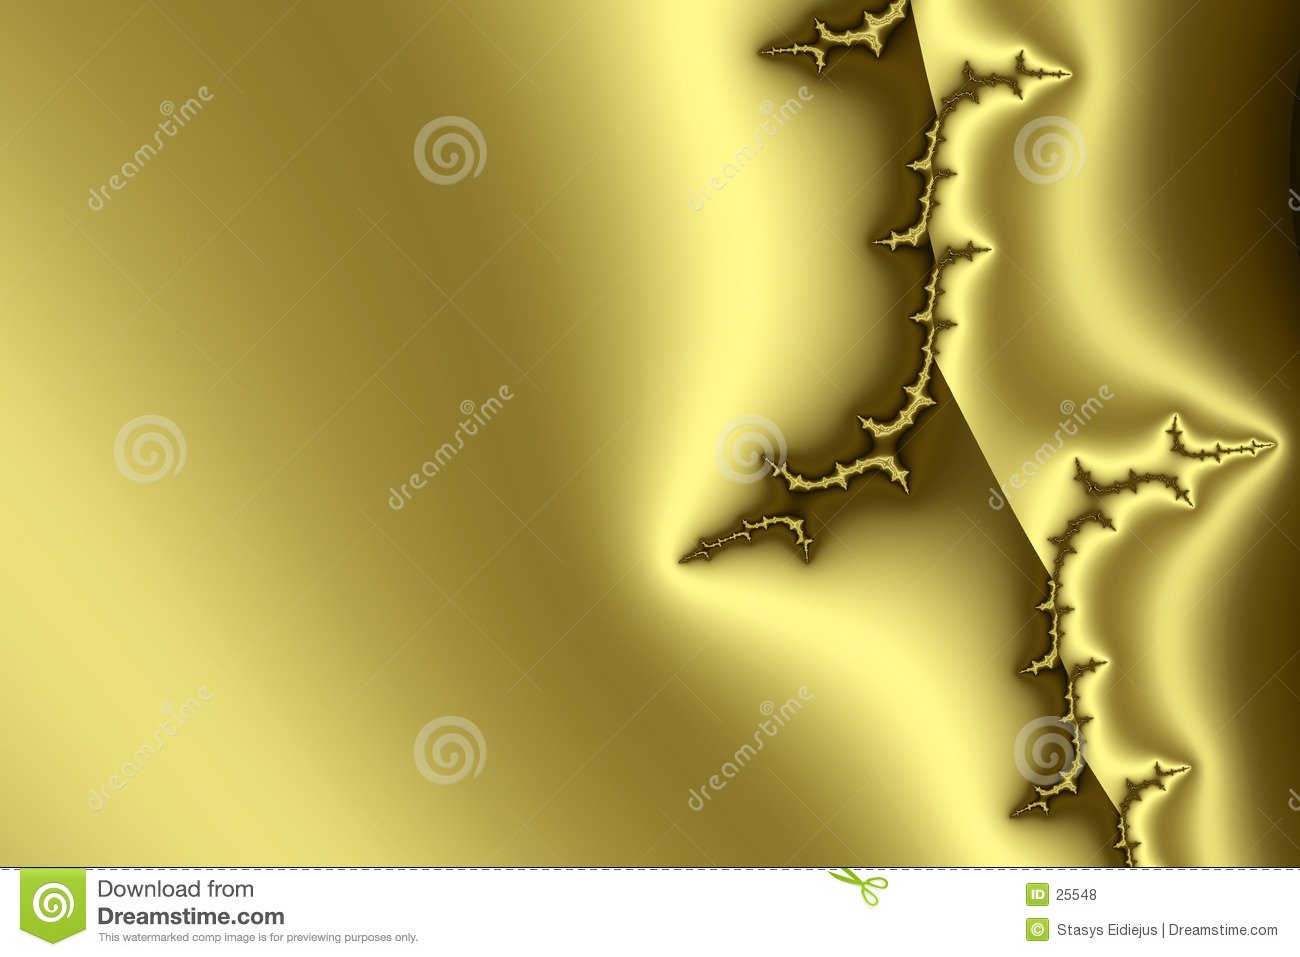 Golden pattern II